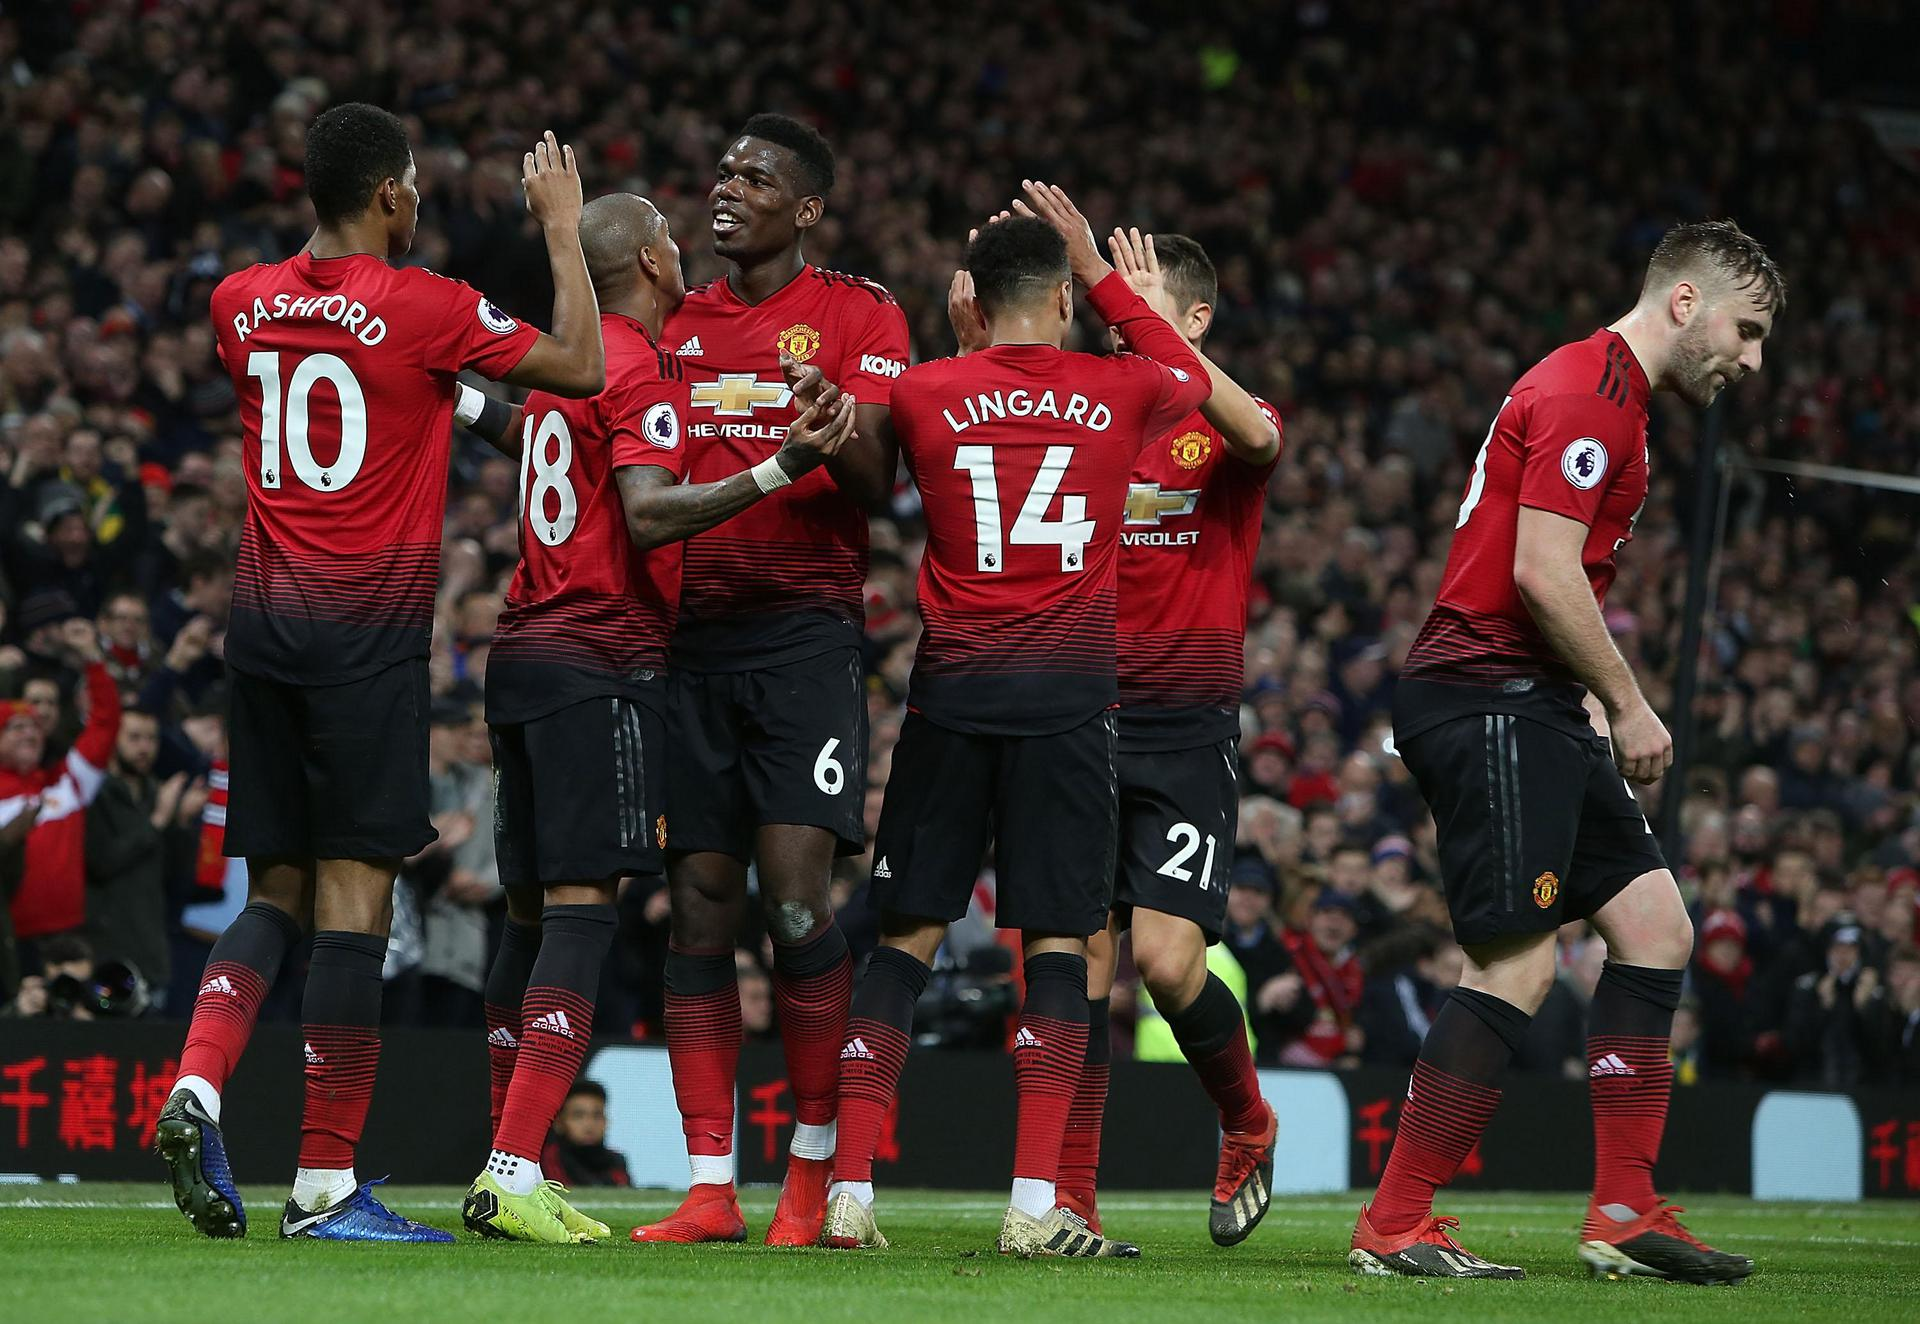 Manchester United players celebrate Rashford's goal during the 4-1 win over Bournemouth